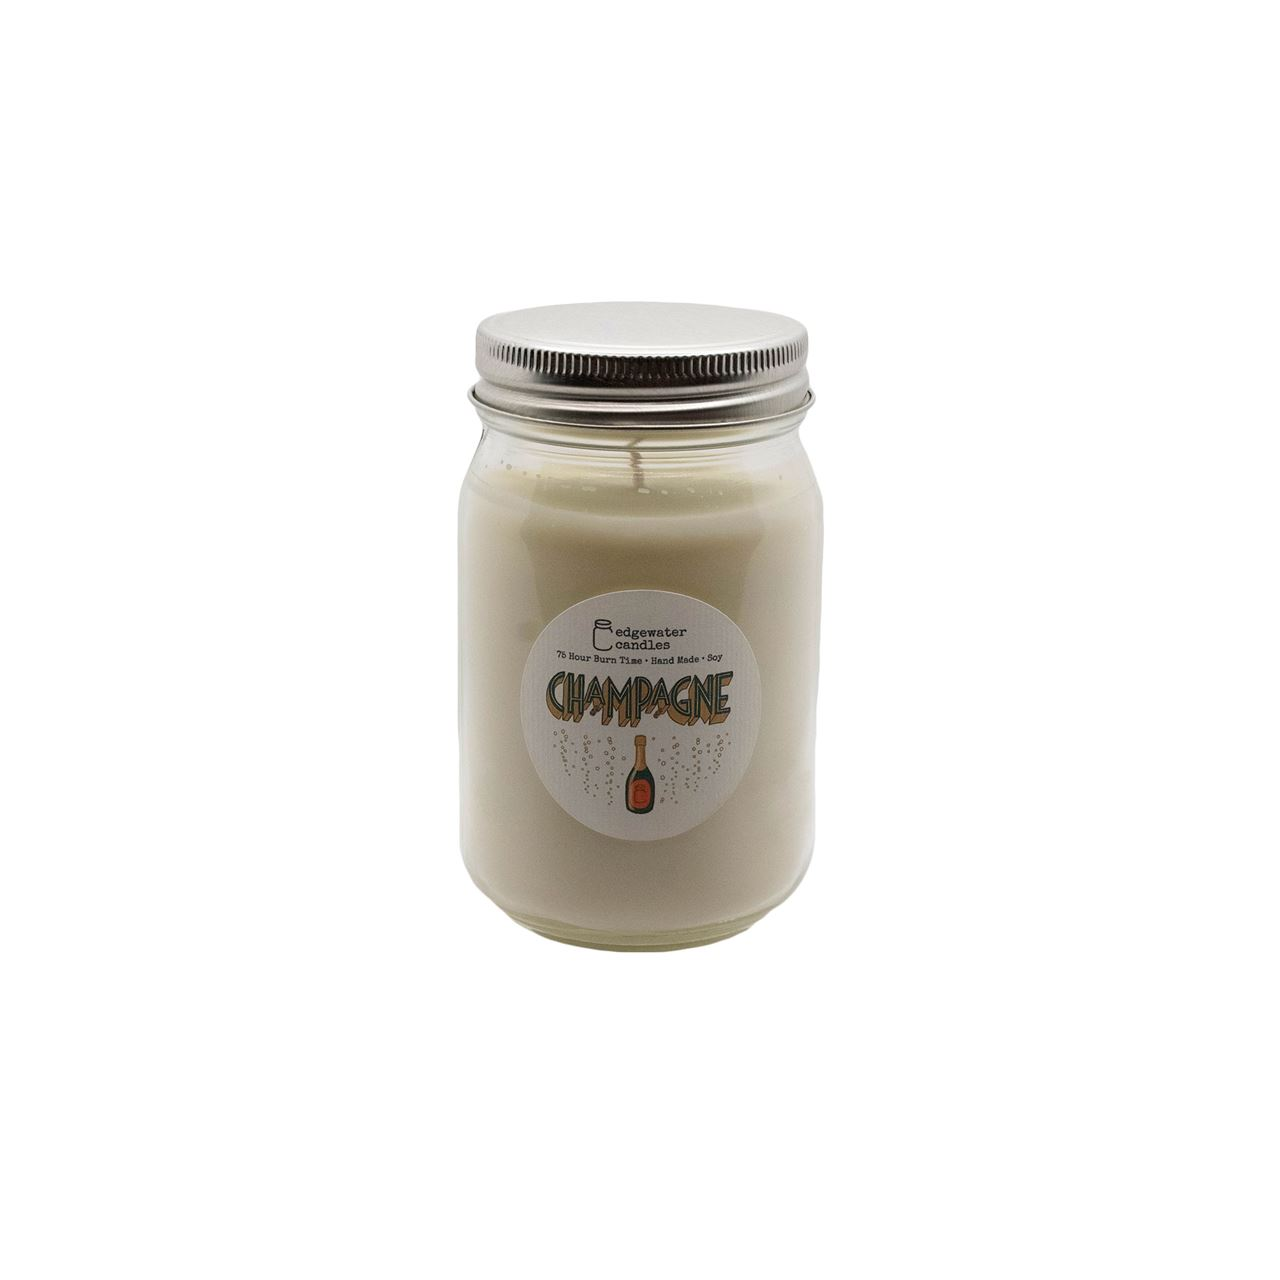 Champagne Jar by Edgewater Candles